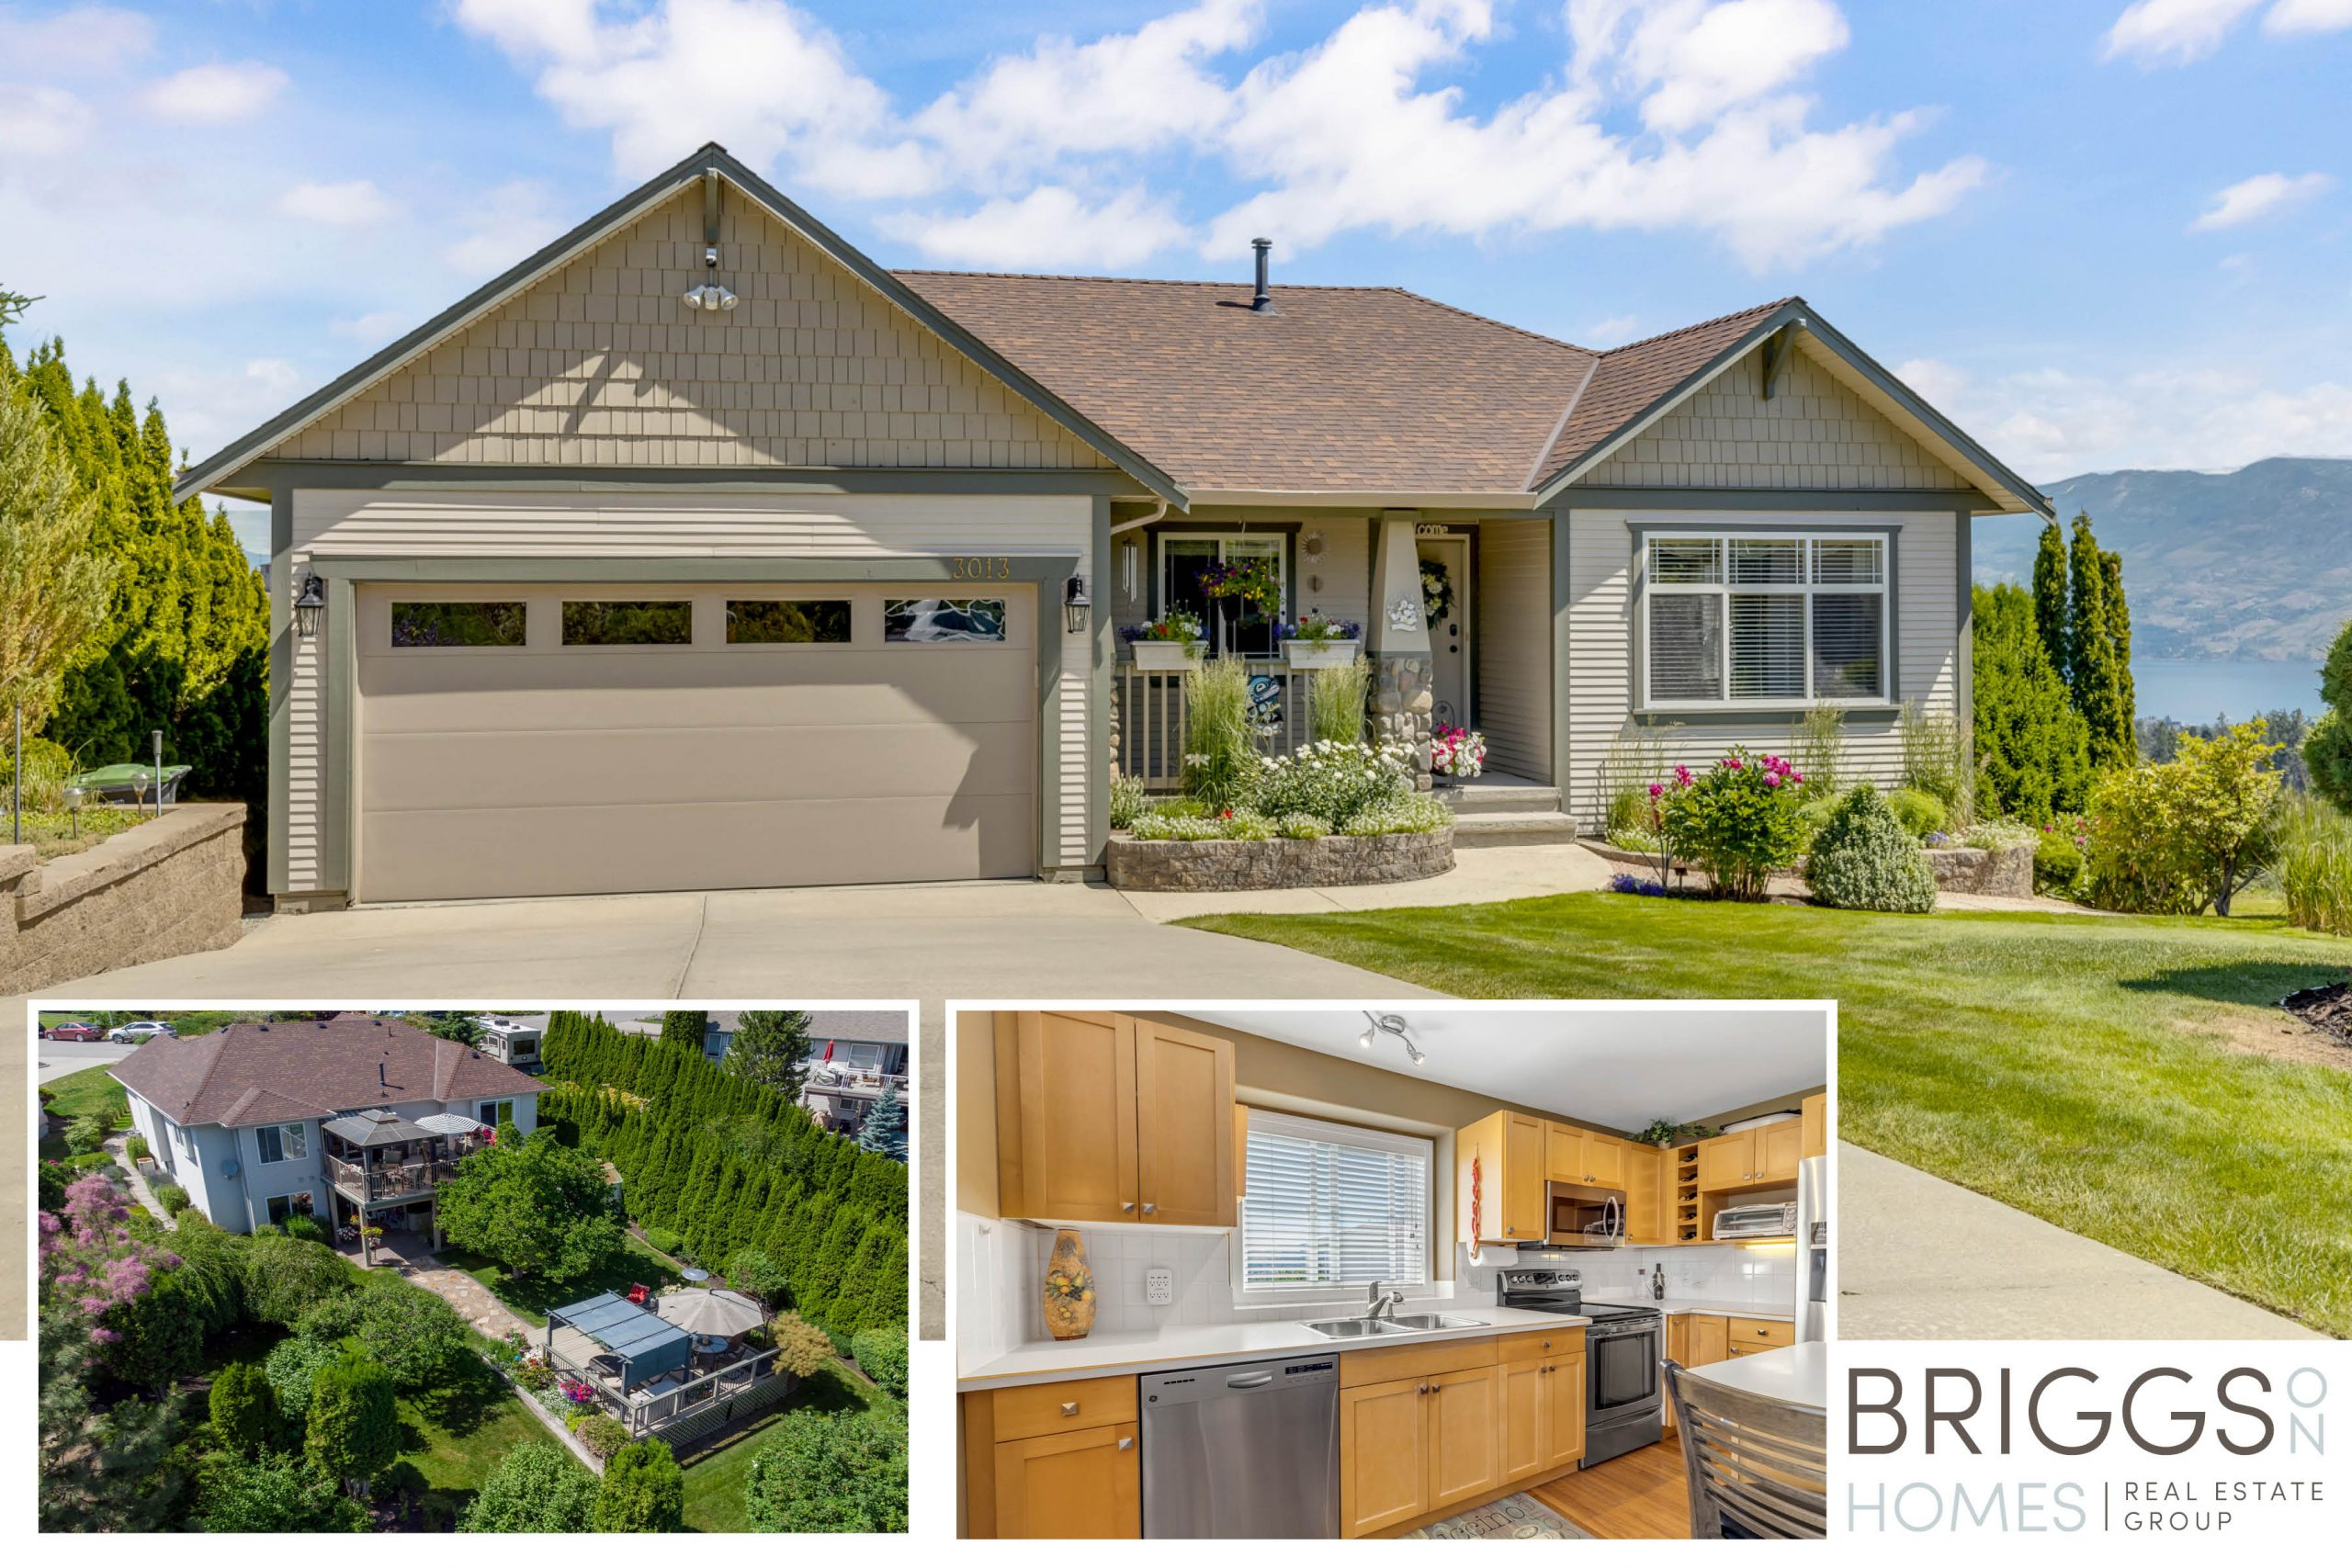 Just Listed! Lovely walkout rancher